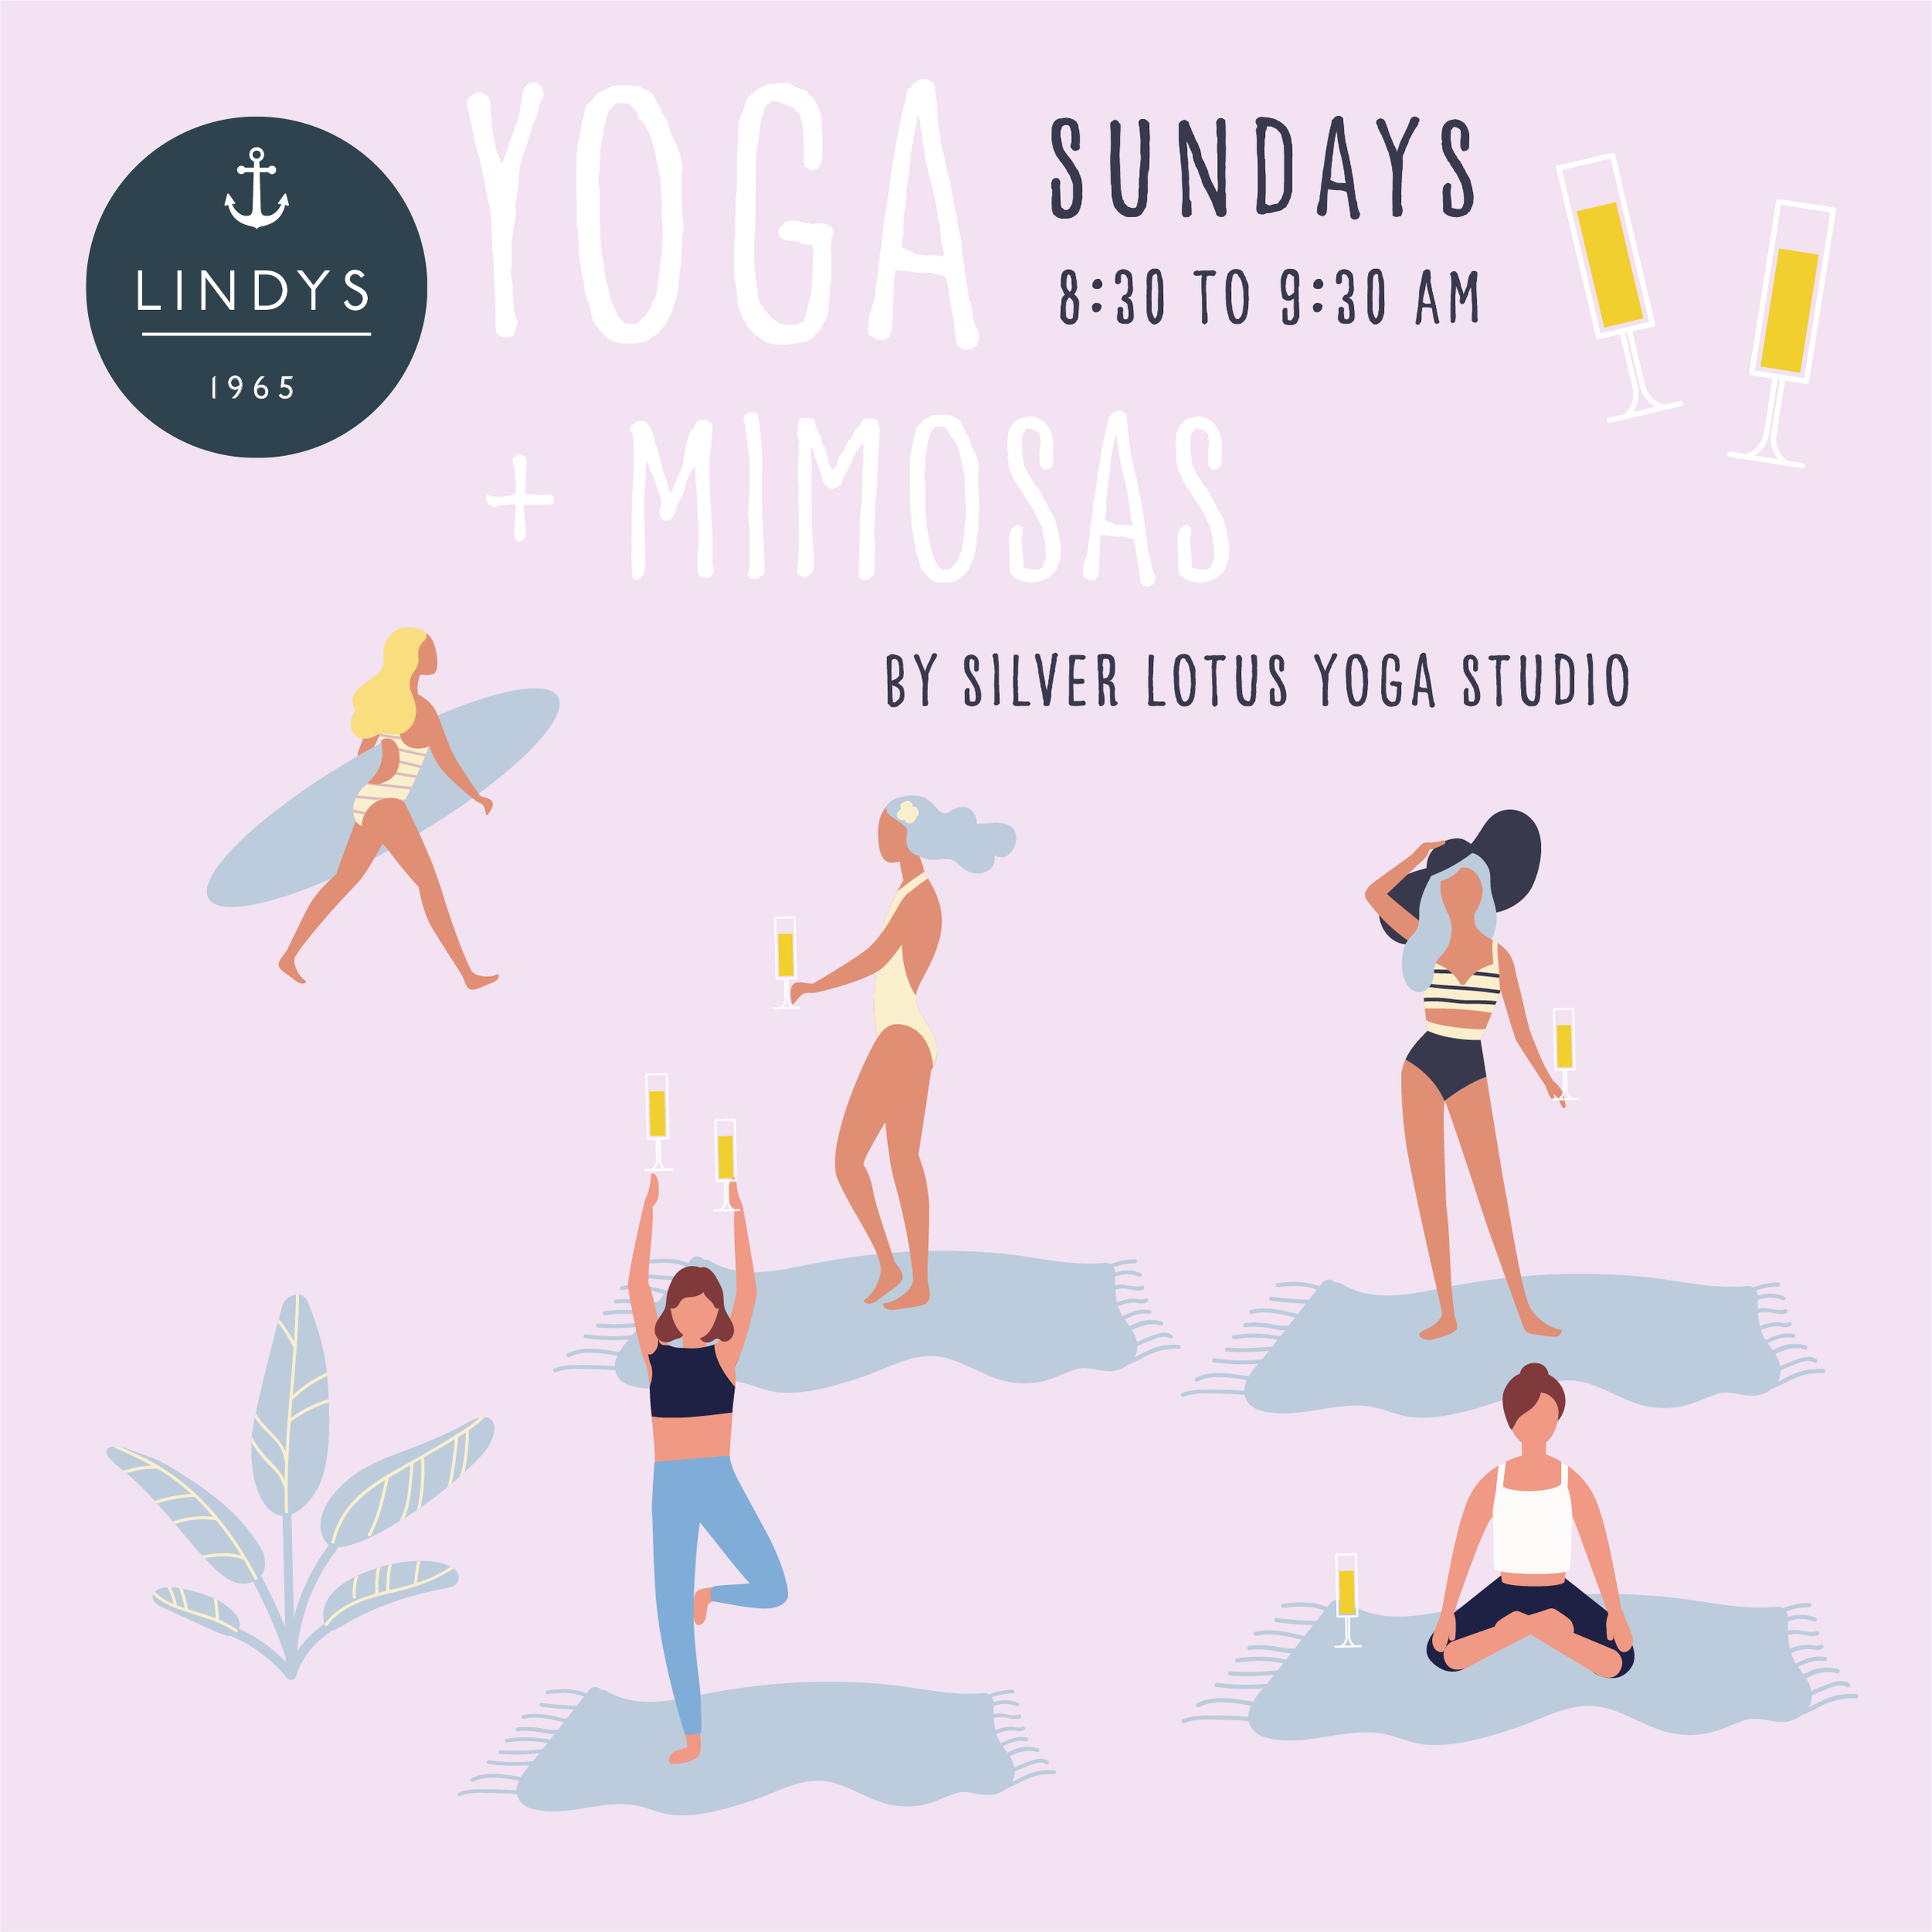 this Sunday July 28th - $15 per personNo sign up needed, just meet us on the beach at Lindy's. Beach towels provided, but please bring a yoga mat if you'd prefer.(mimosas not included in price)Cheers Yogis!